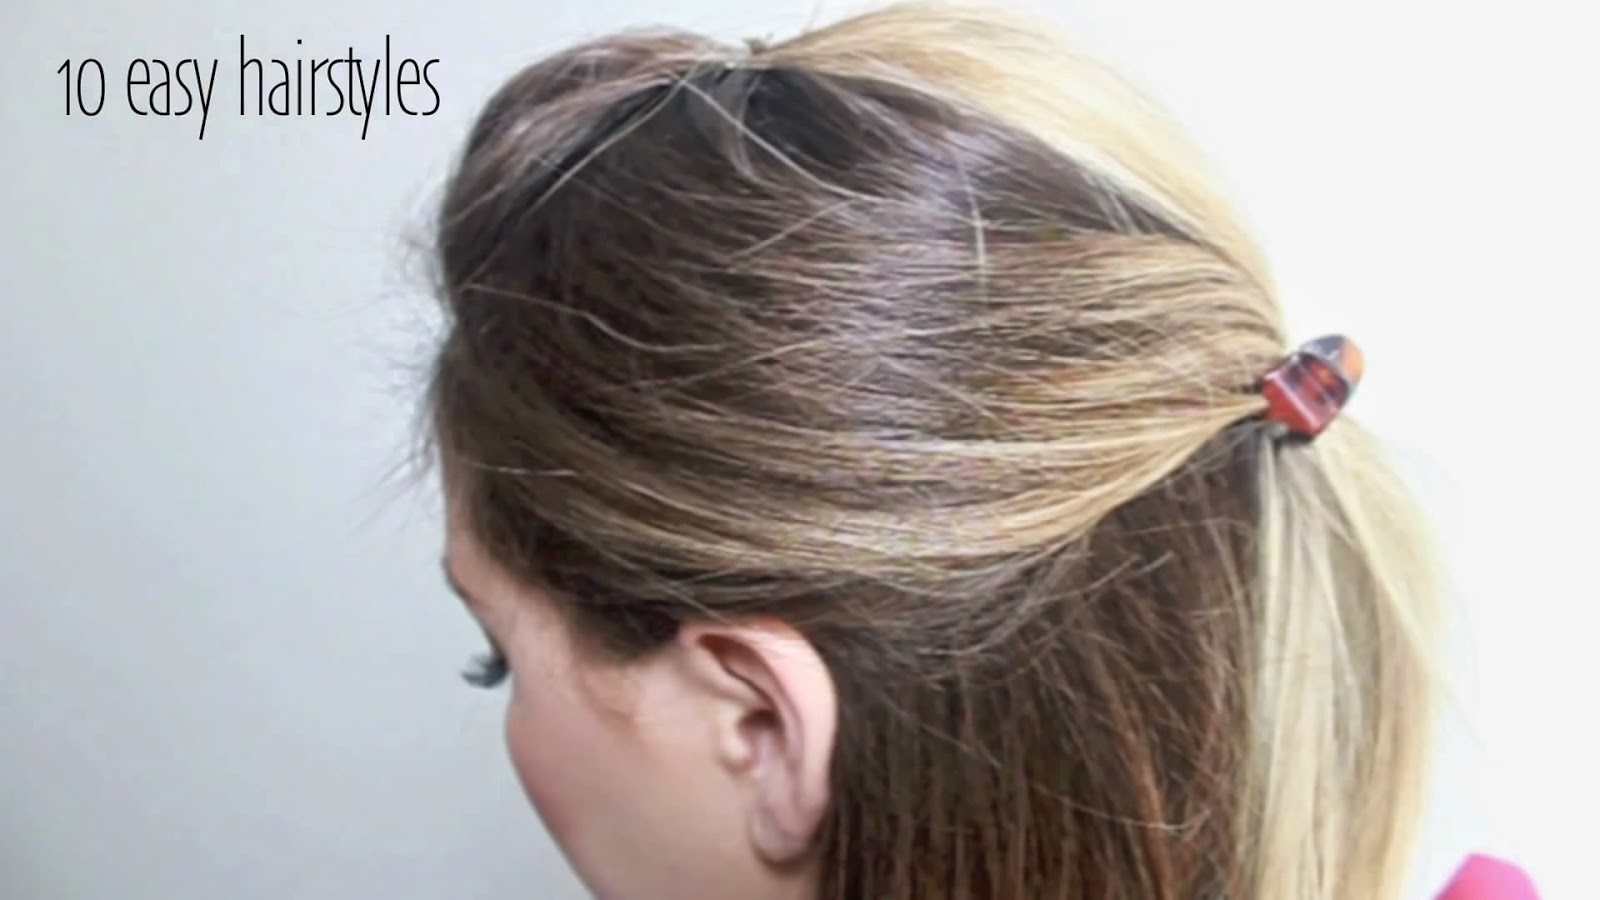 Swell Stylevia Top 10 Easy Hairstyles Can Set In 5 Minutes Hairstyles For Women Draintrainus